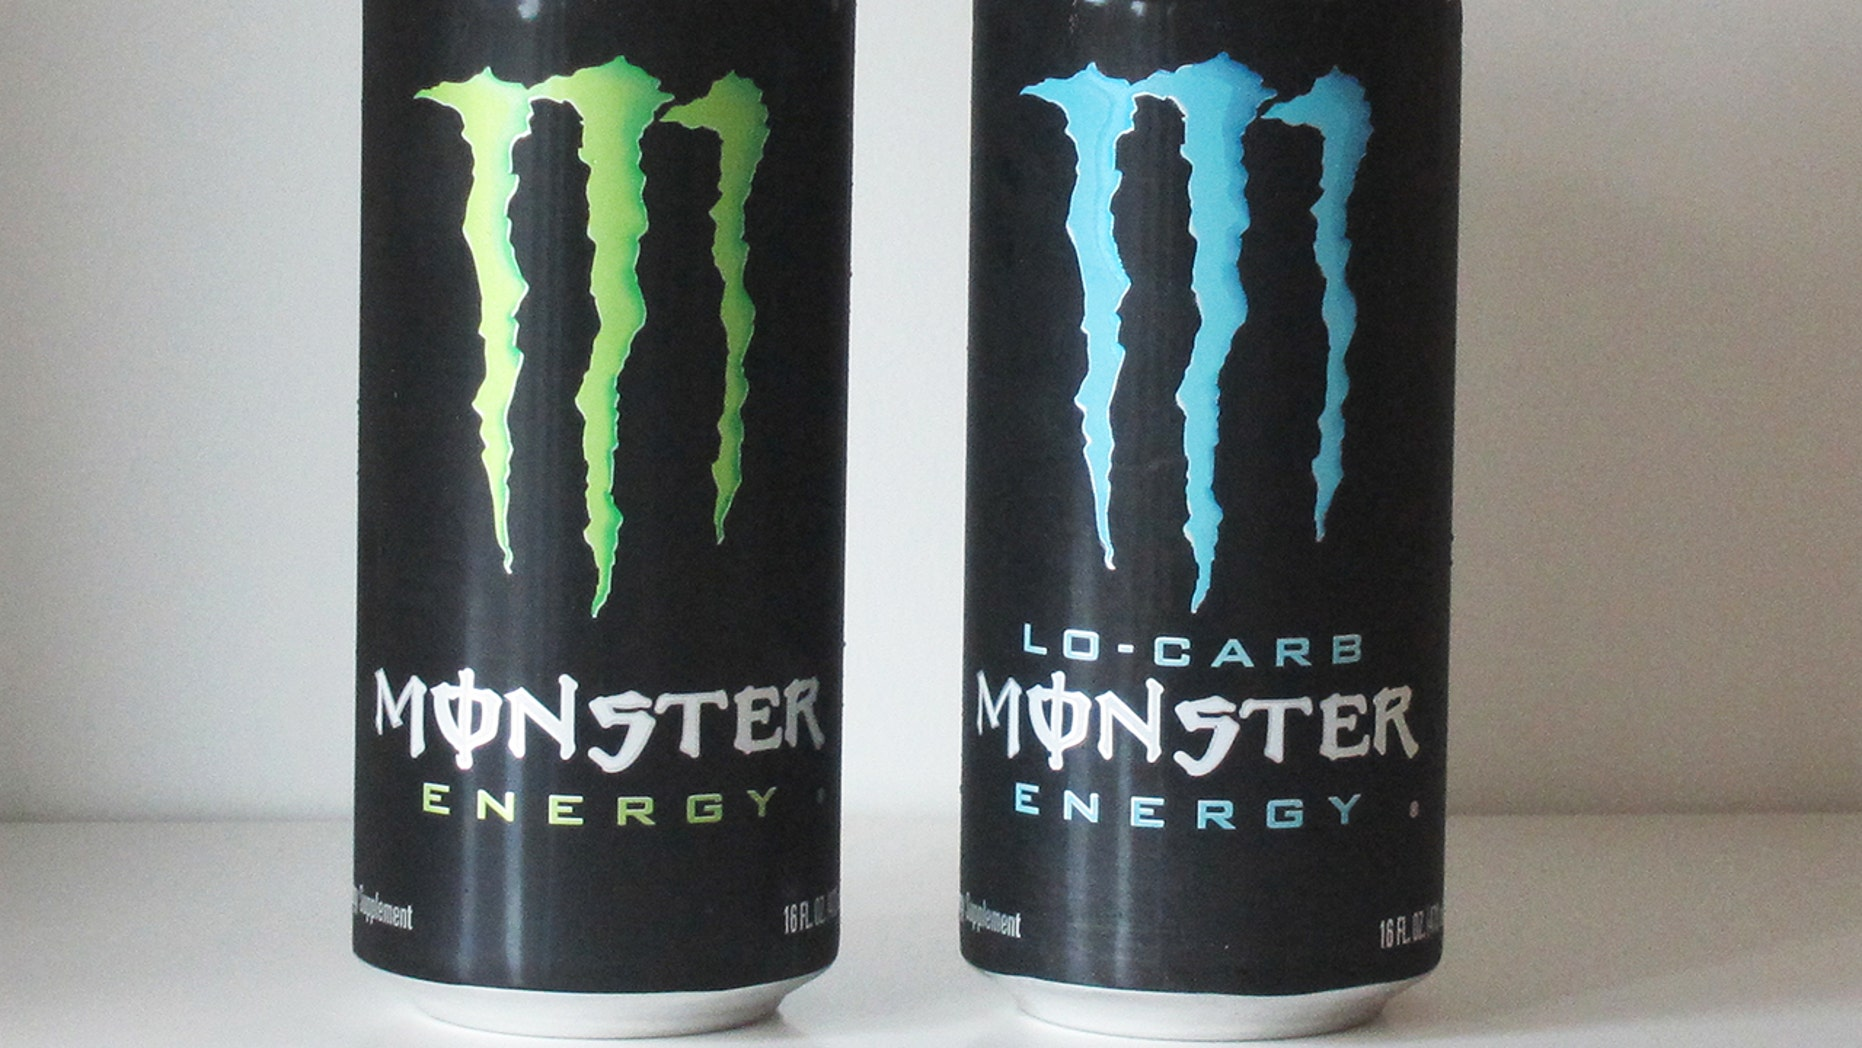 Five women have filed lawsuits accusing Monster Energy of sexual harassment and abusive behavior.